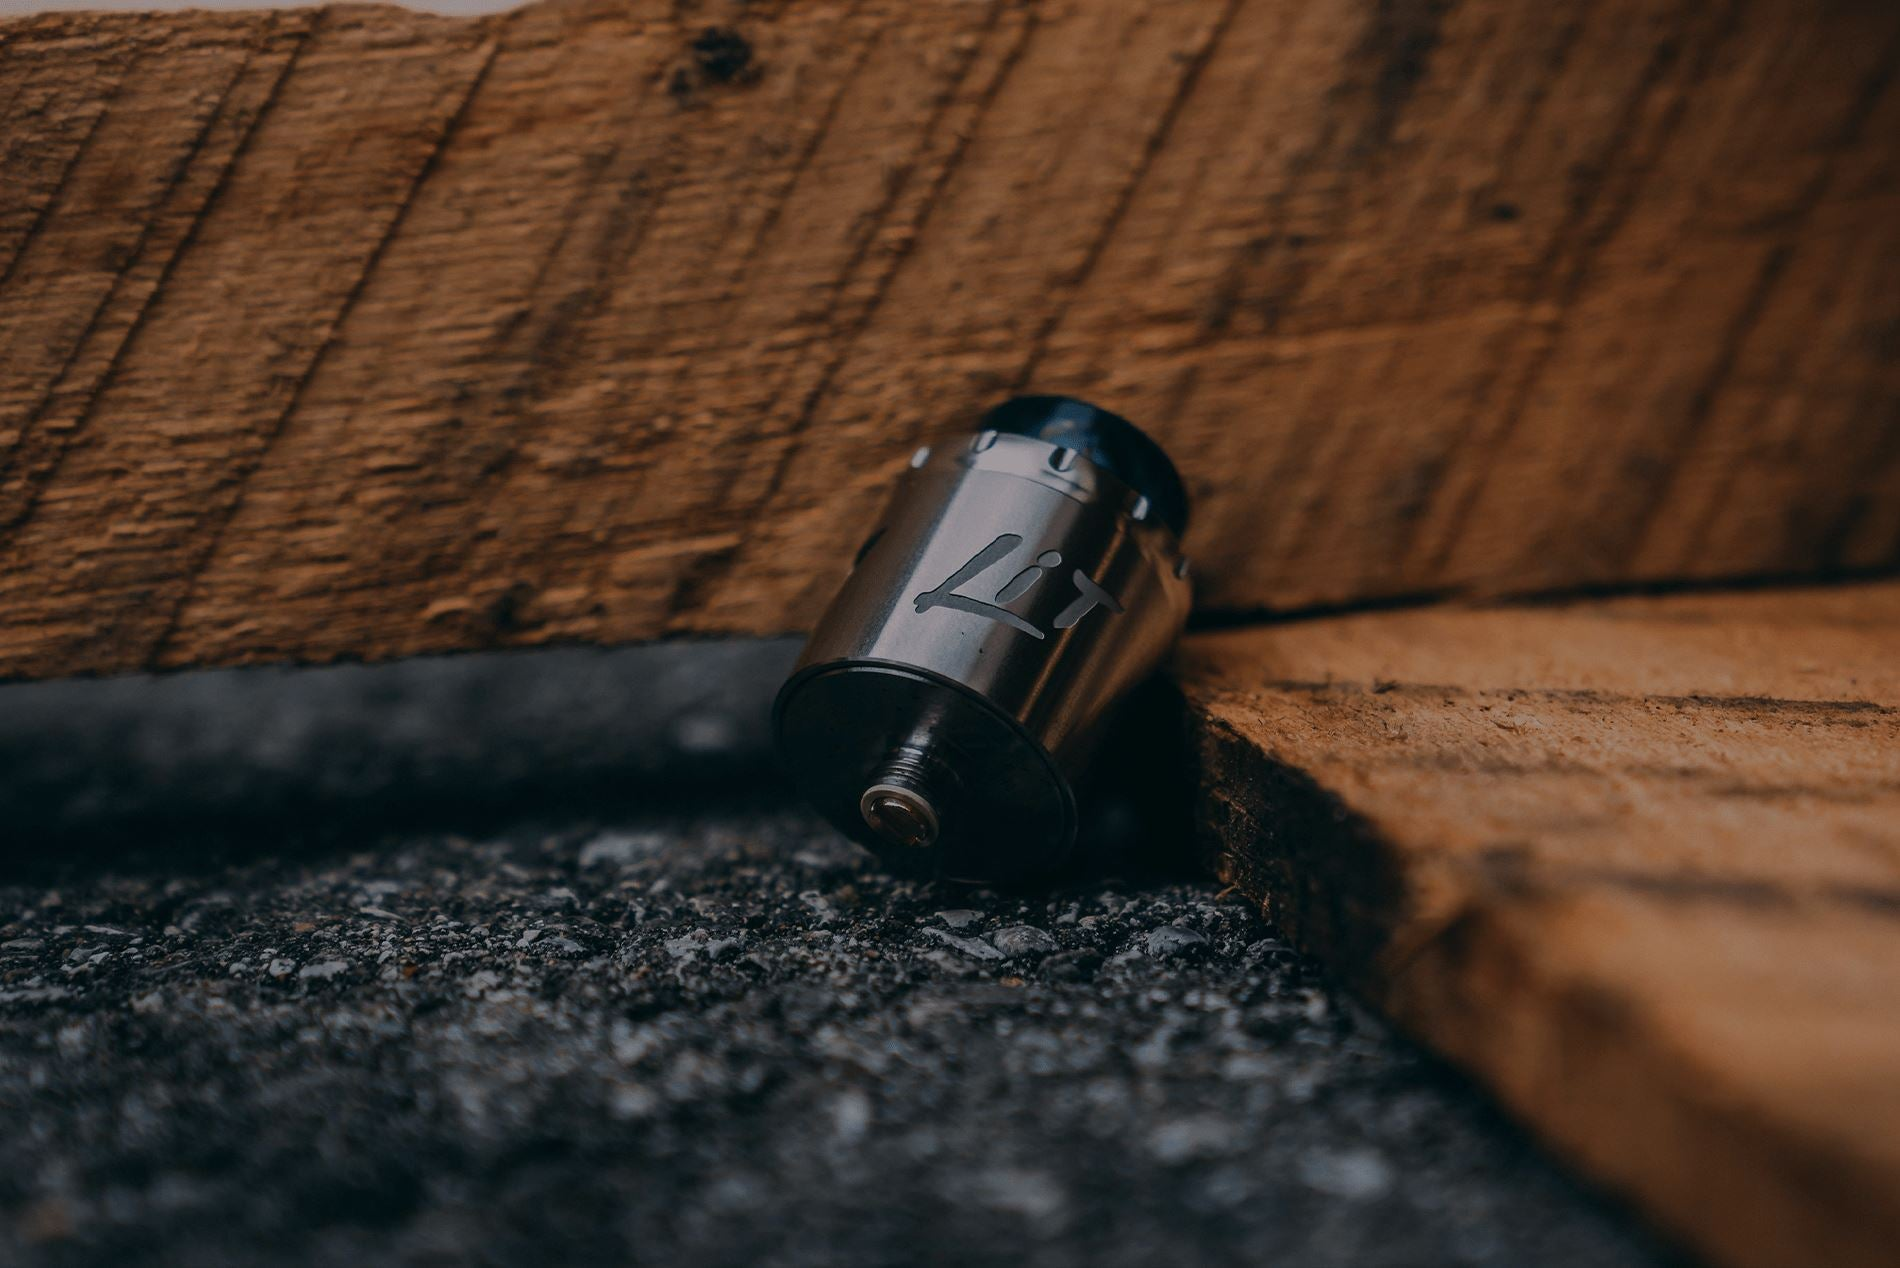 RDA - Rebuildable Dripping Atomizers